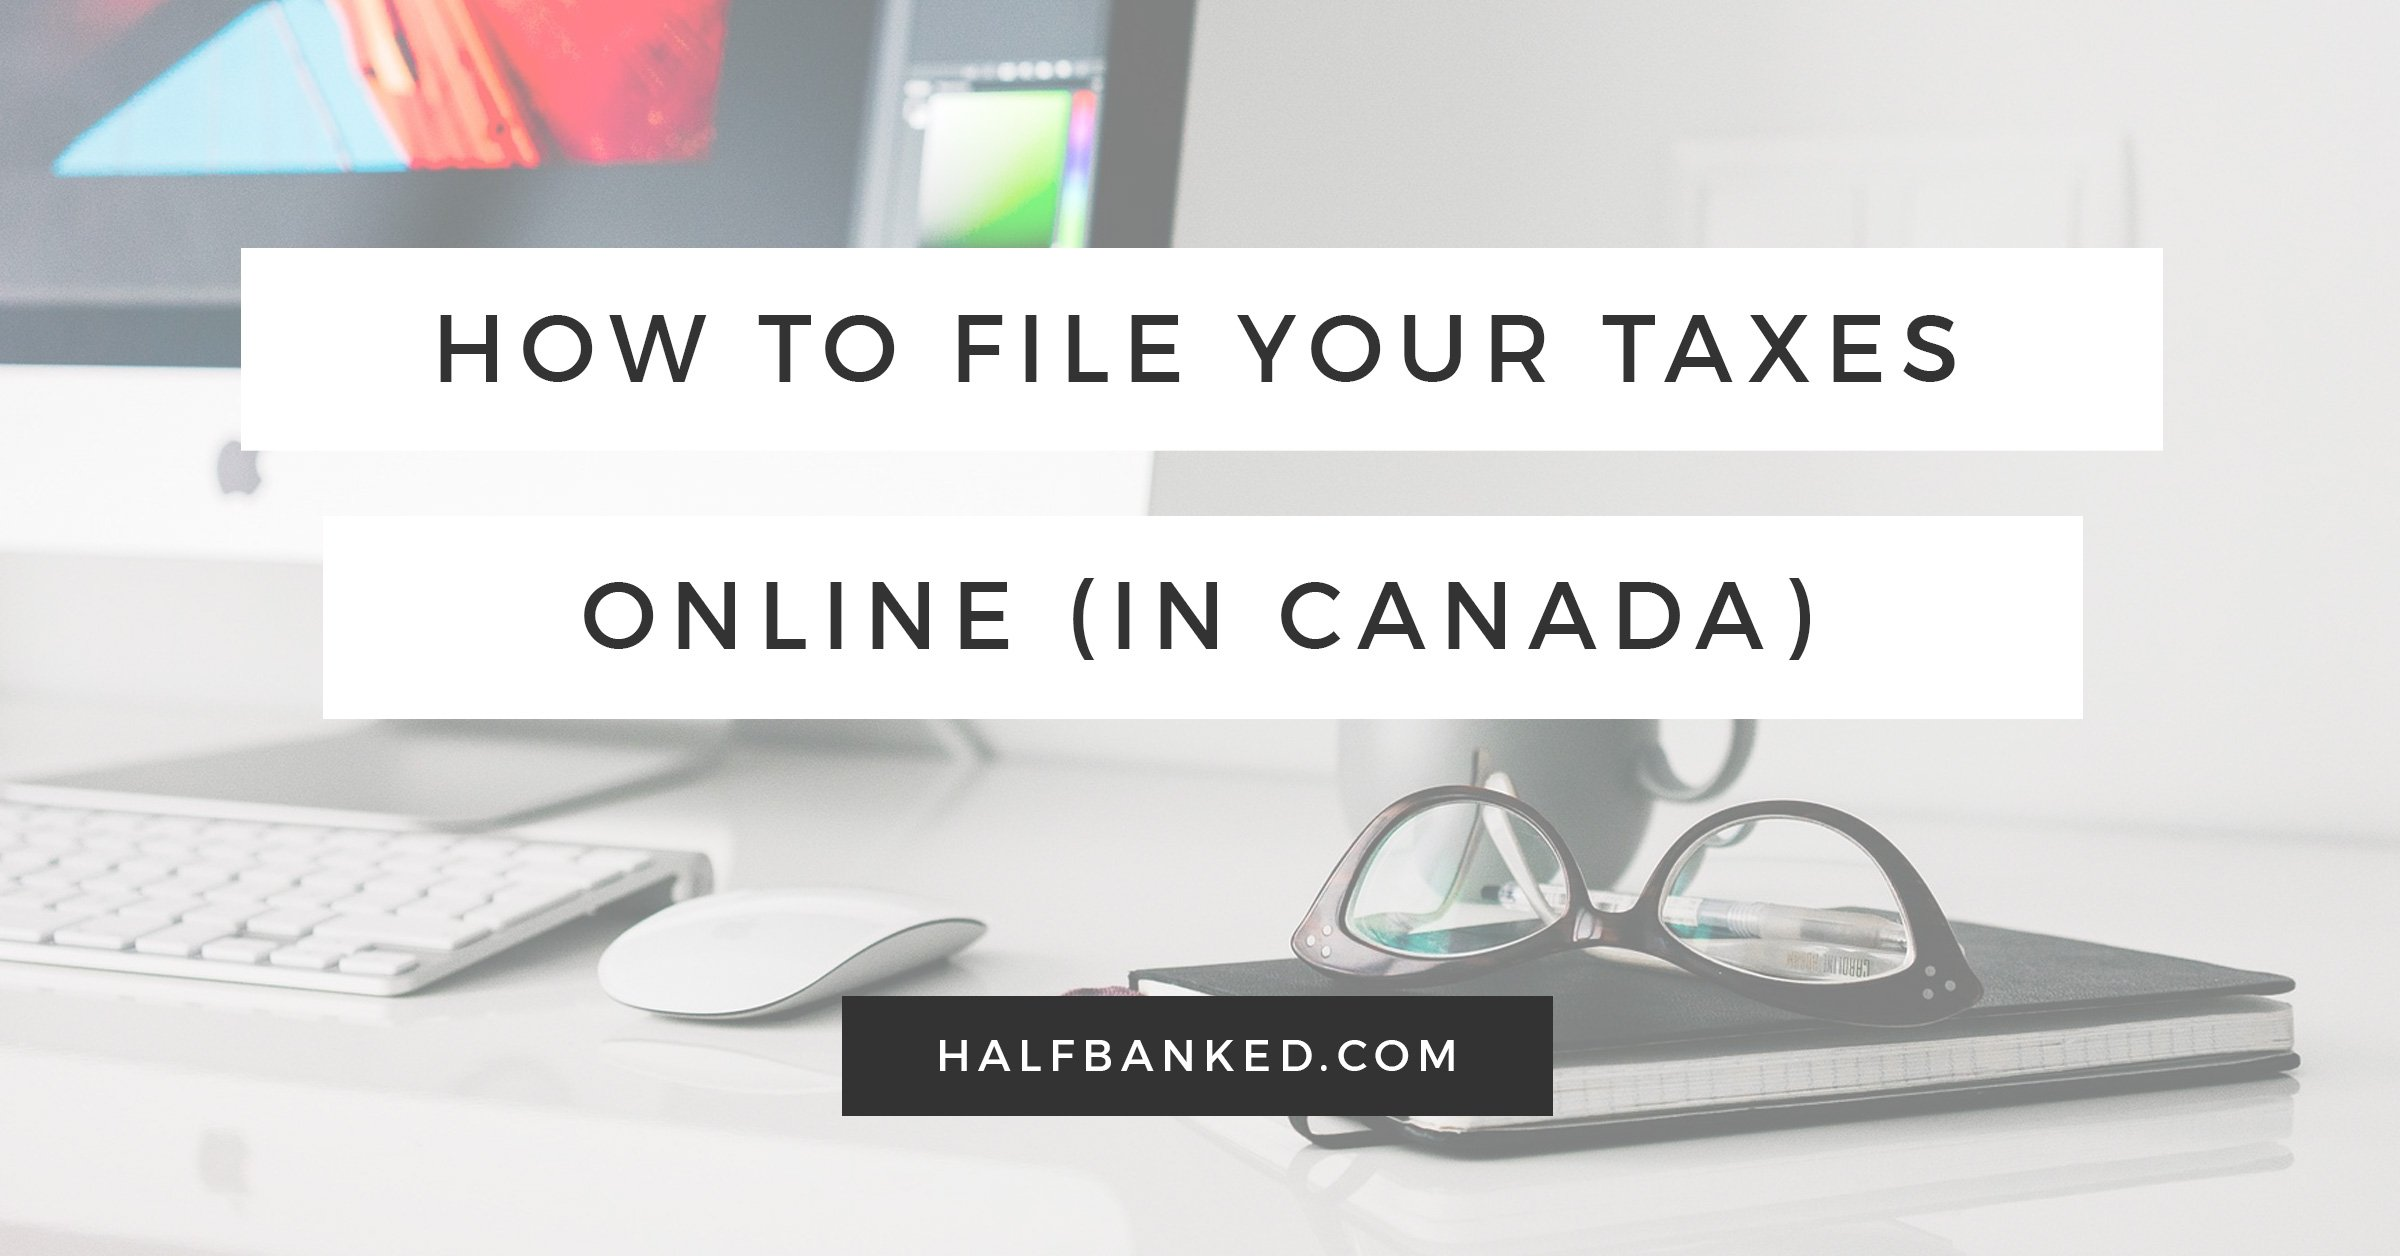 How to File Your Taxes Online in Canada - Half Banked